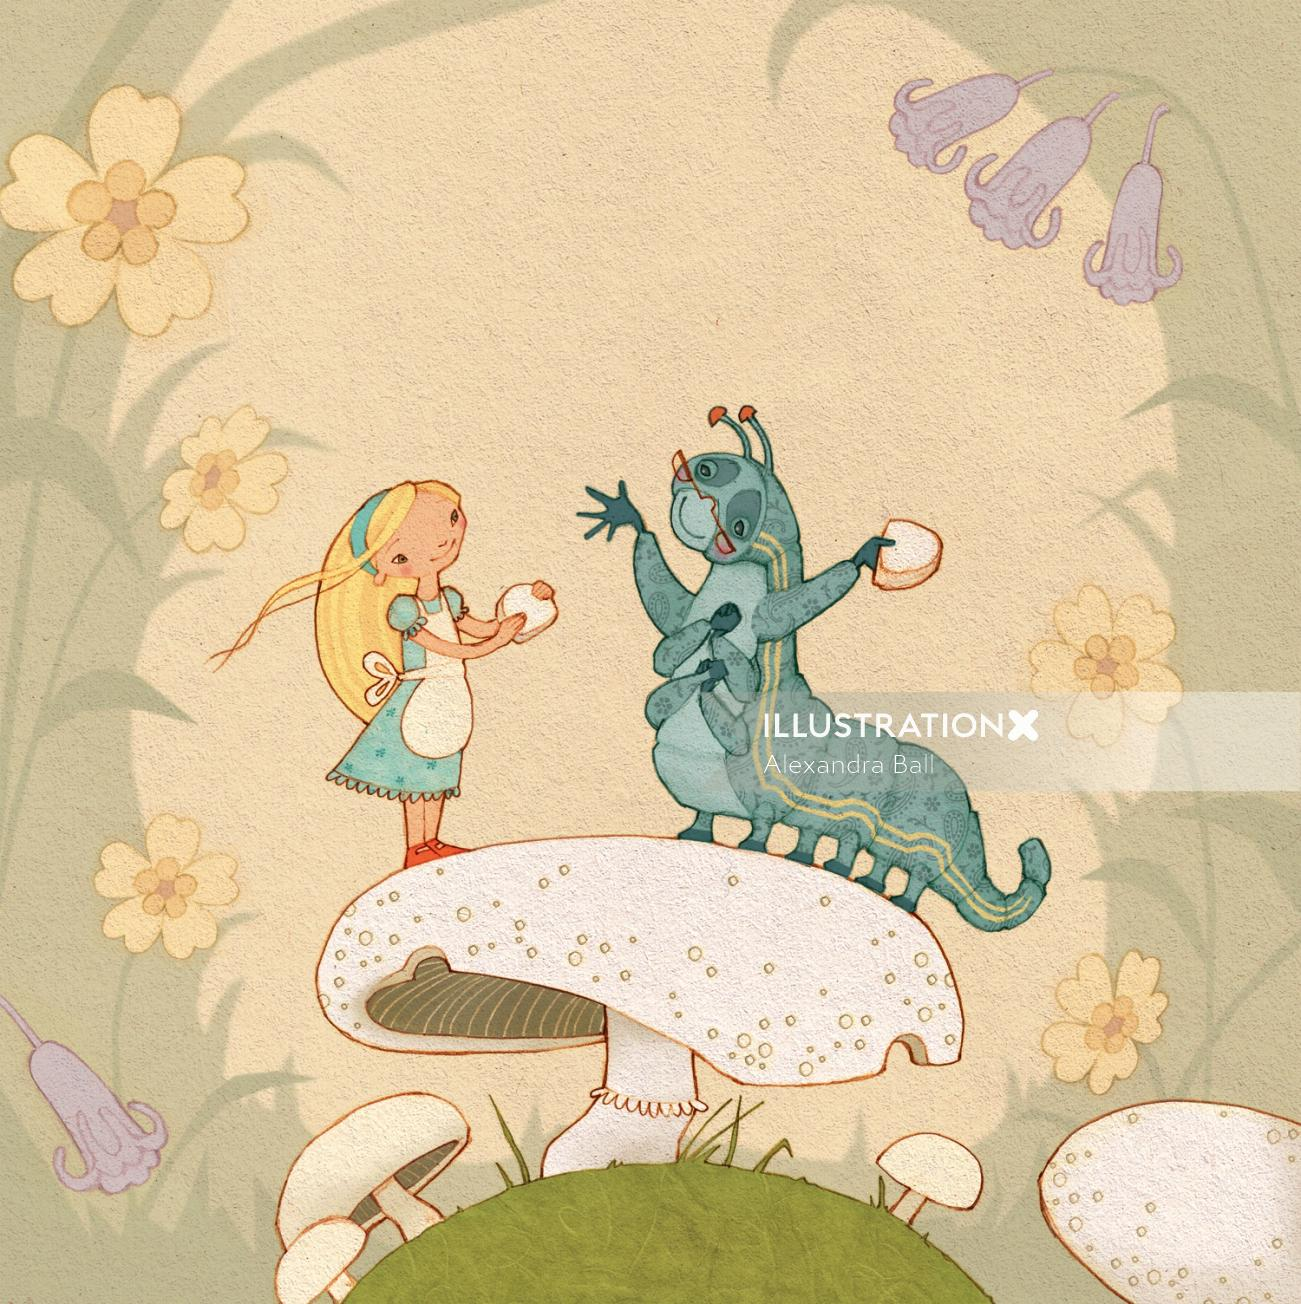 An illustration of Alice and the blue caterpillar